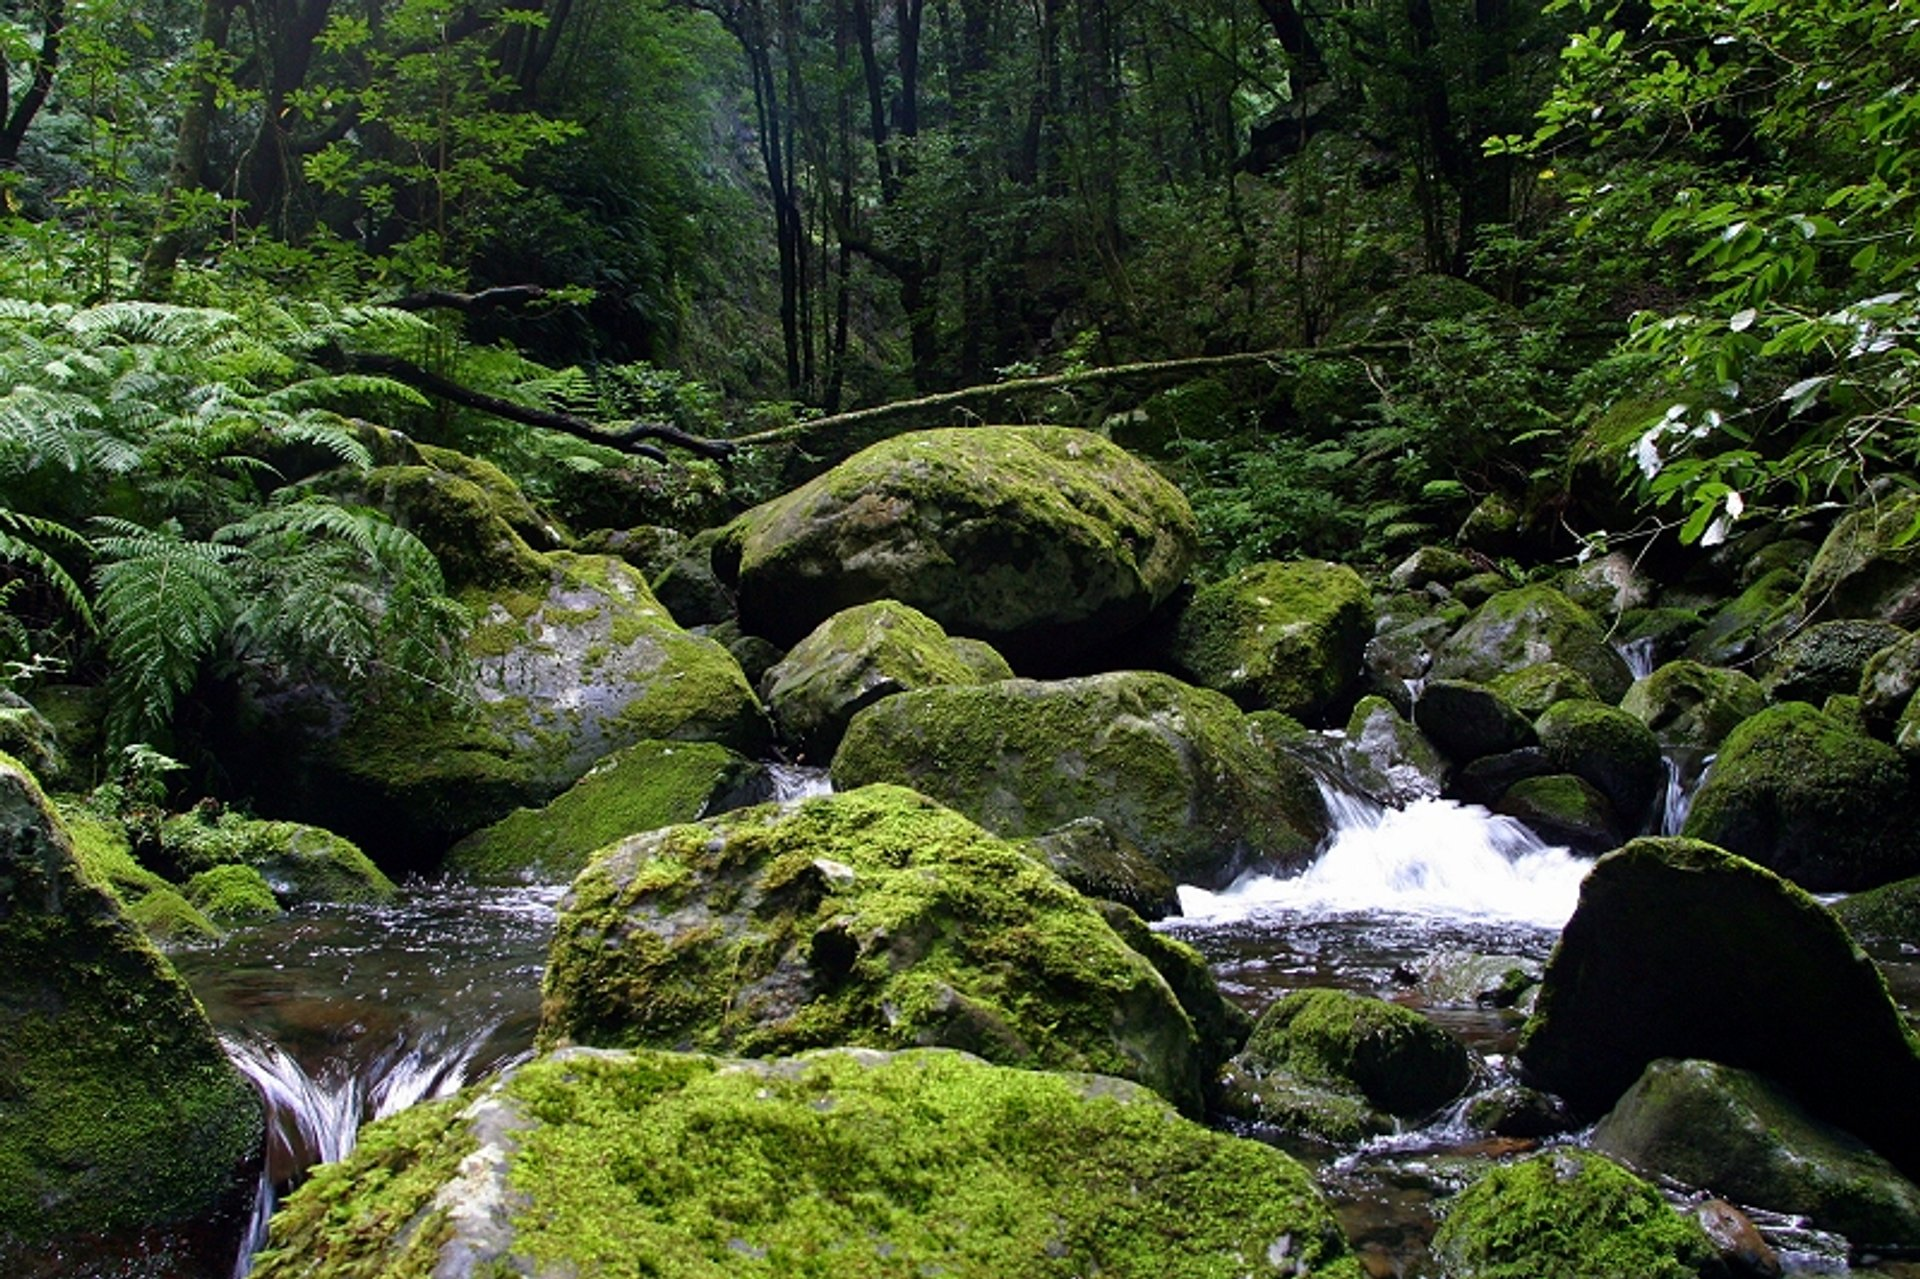 A magical place: Ribeiro Bonito, just before the source of the 'Levada do Rei', São Jorge, Madeira Island 2020